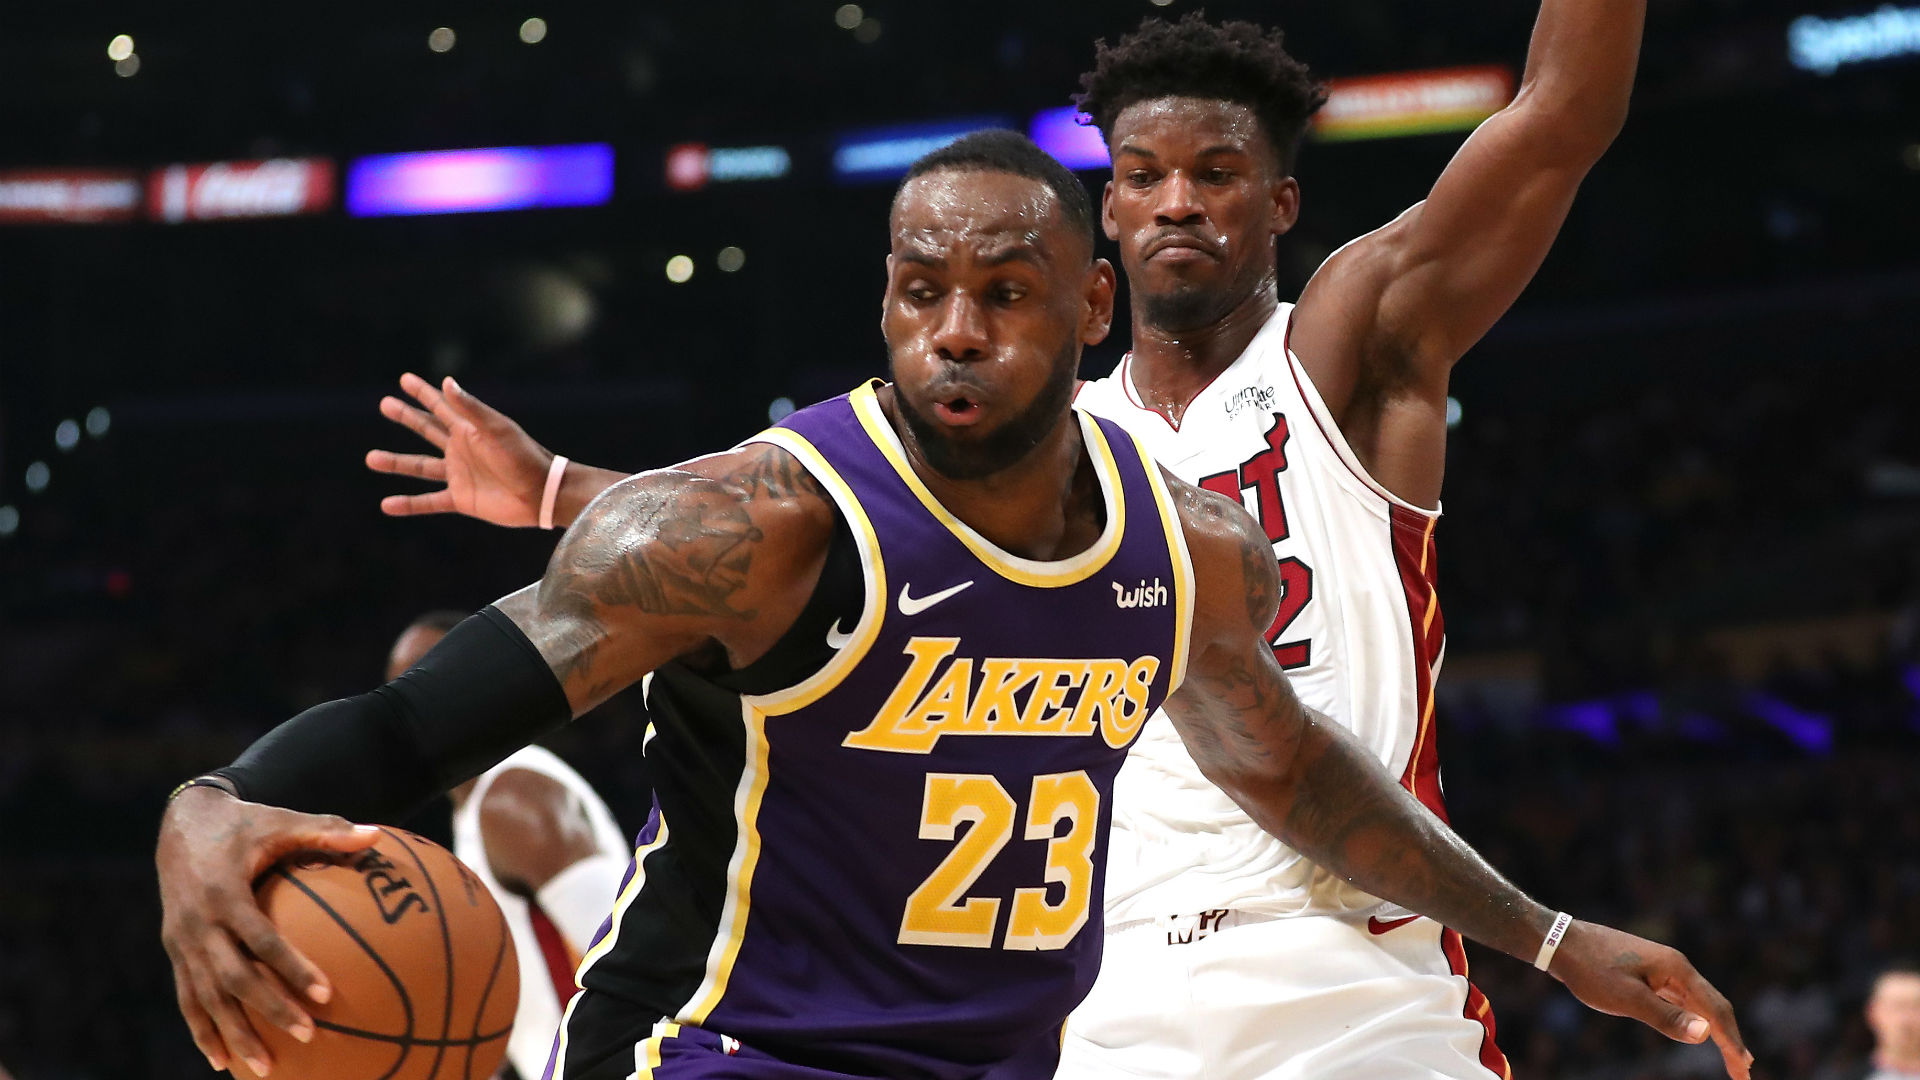 NBA Finals schedule 2020: Dates, times, TV channels for Heat vs. Lakers